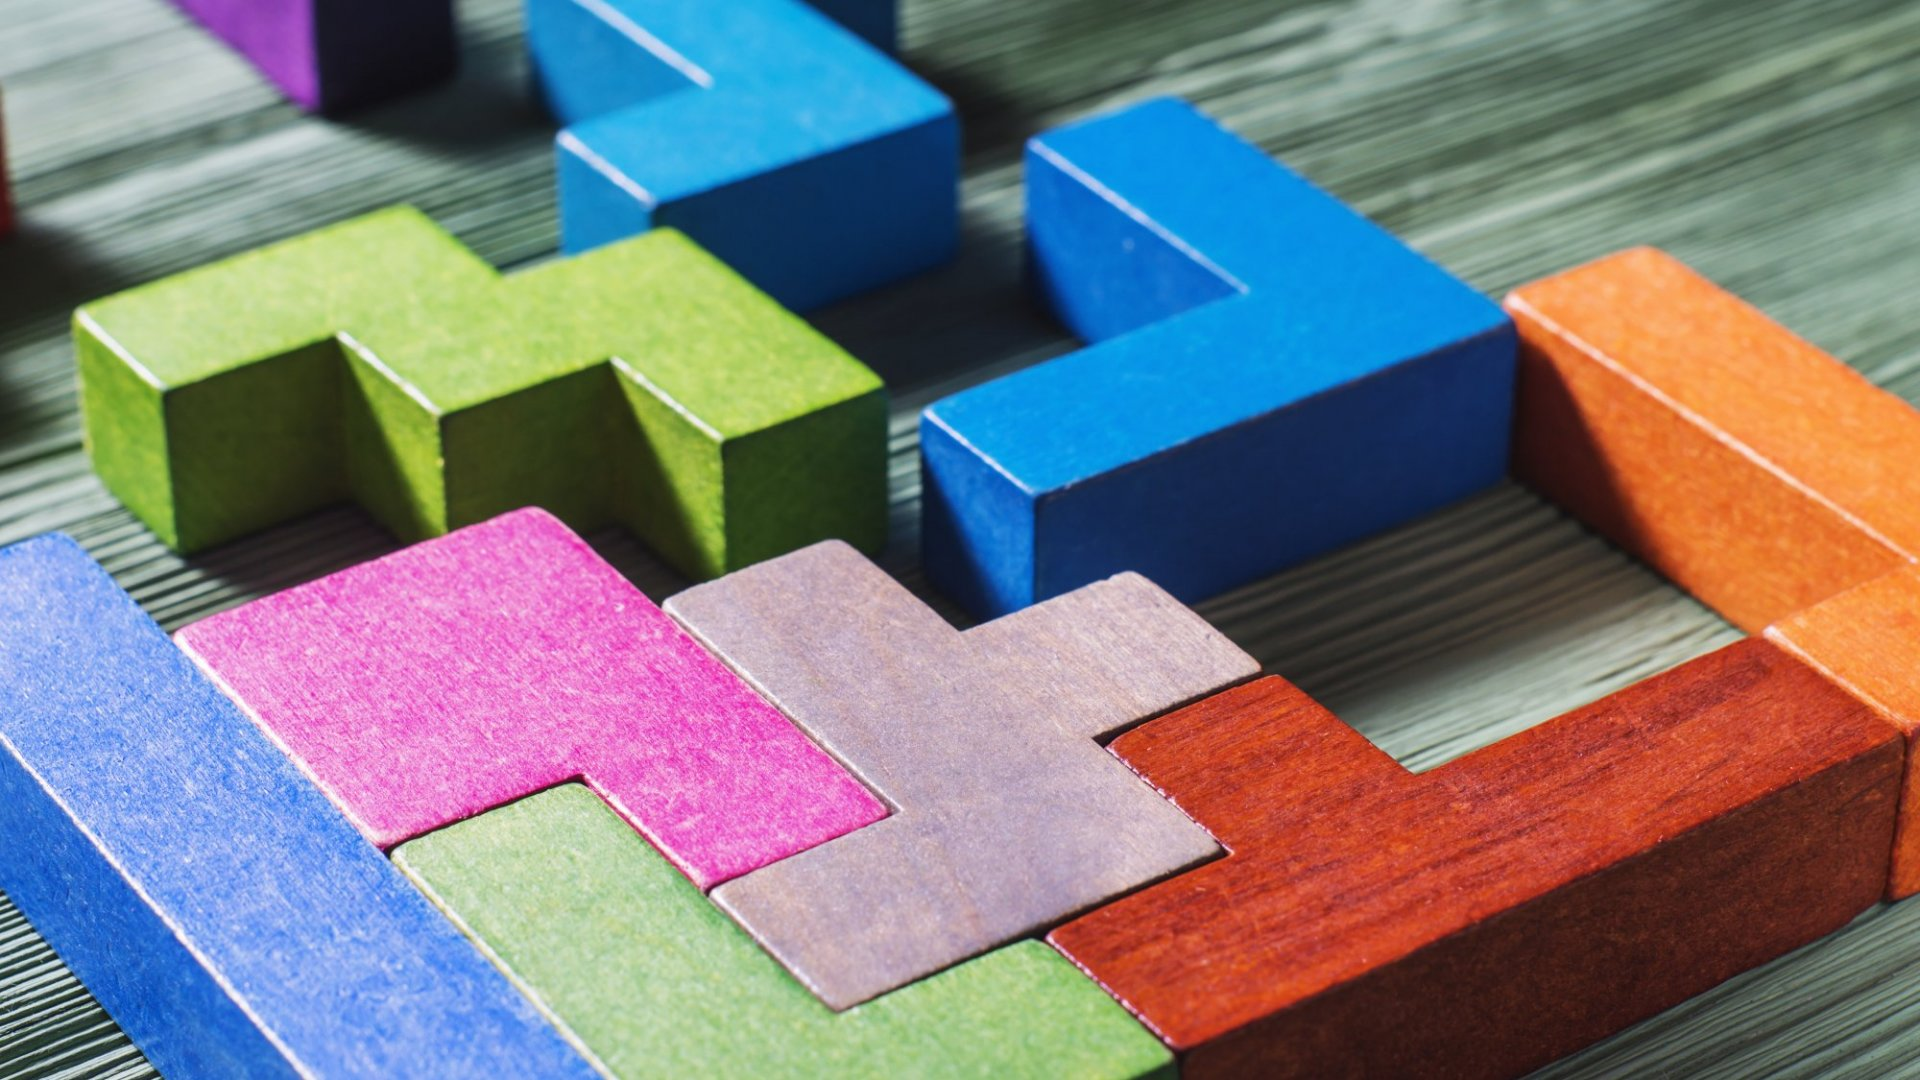 Science Says During These Anxious Moments What You Might Really Need is... Tetris